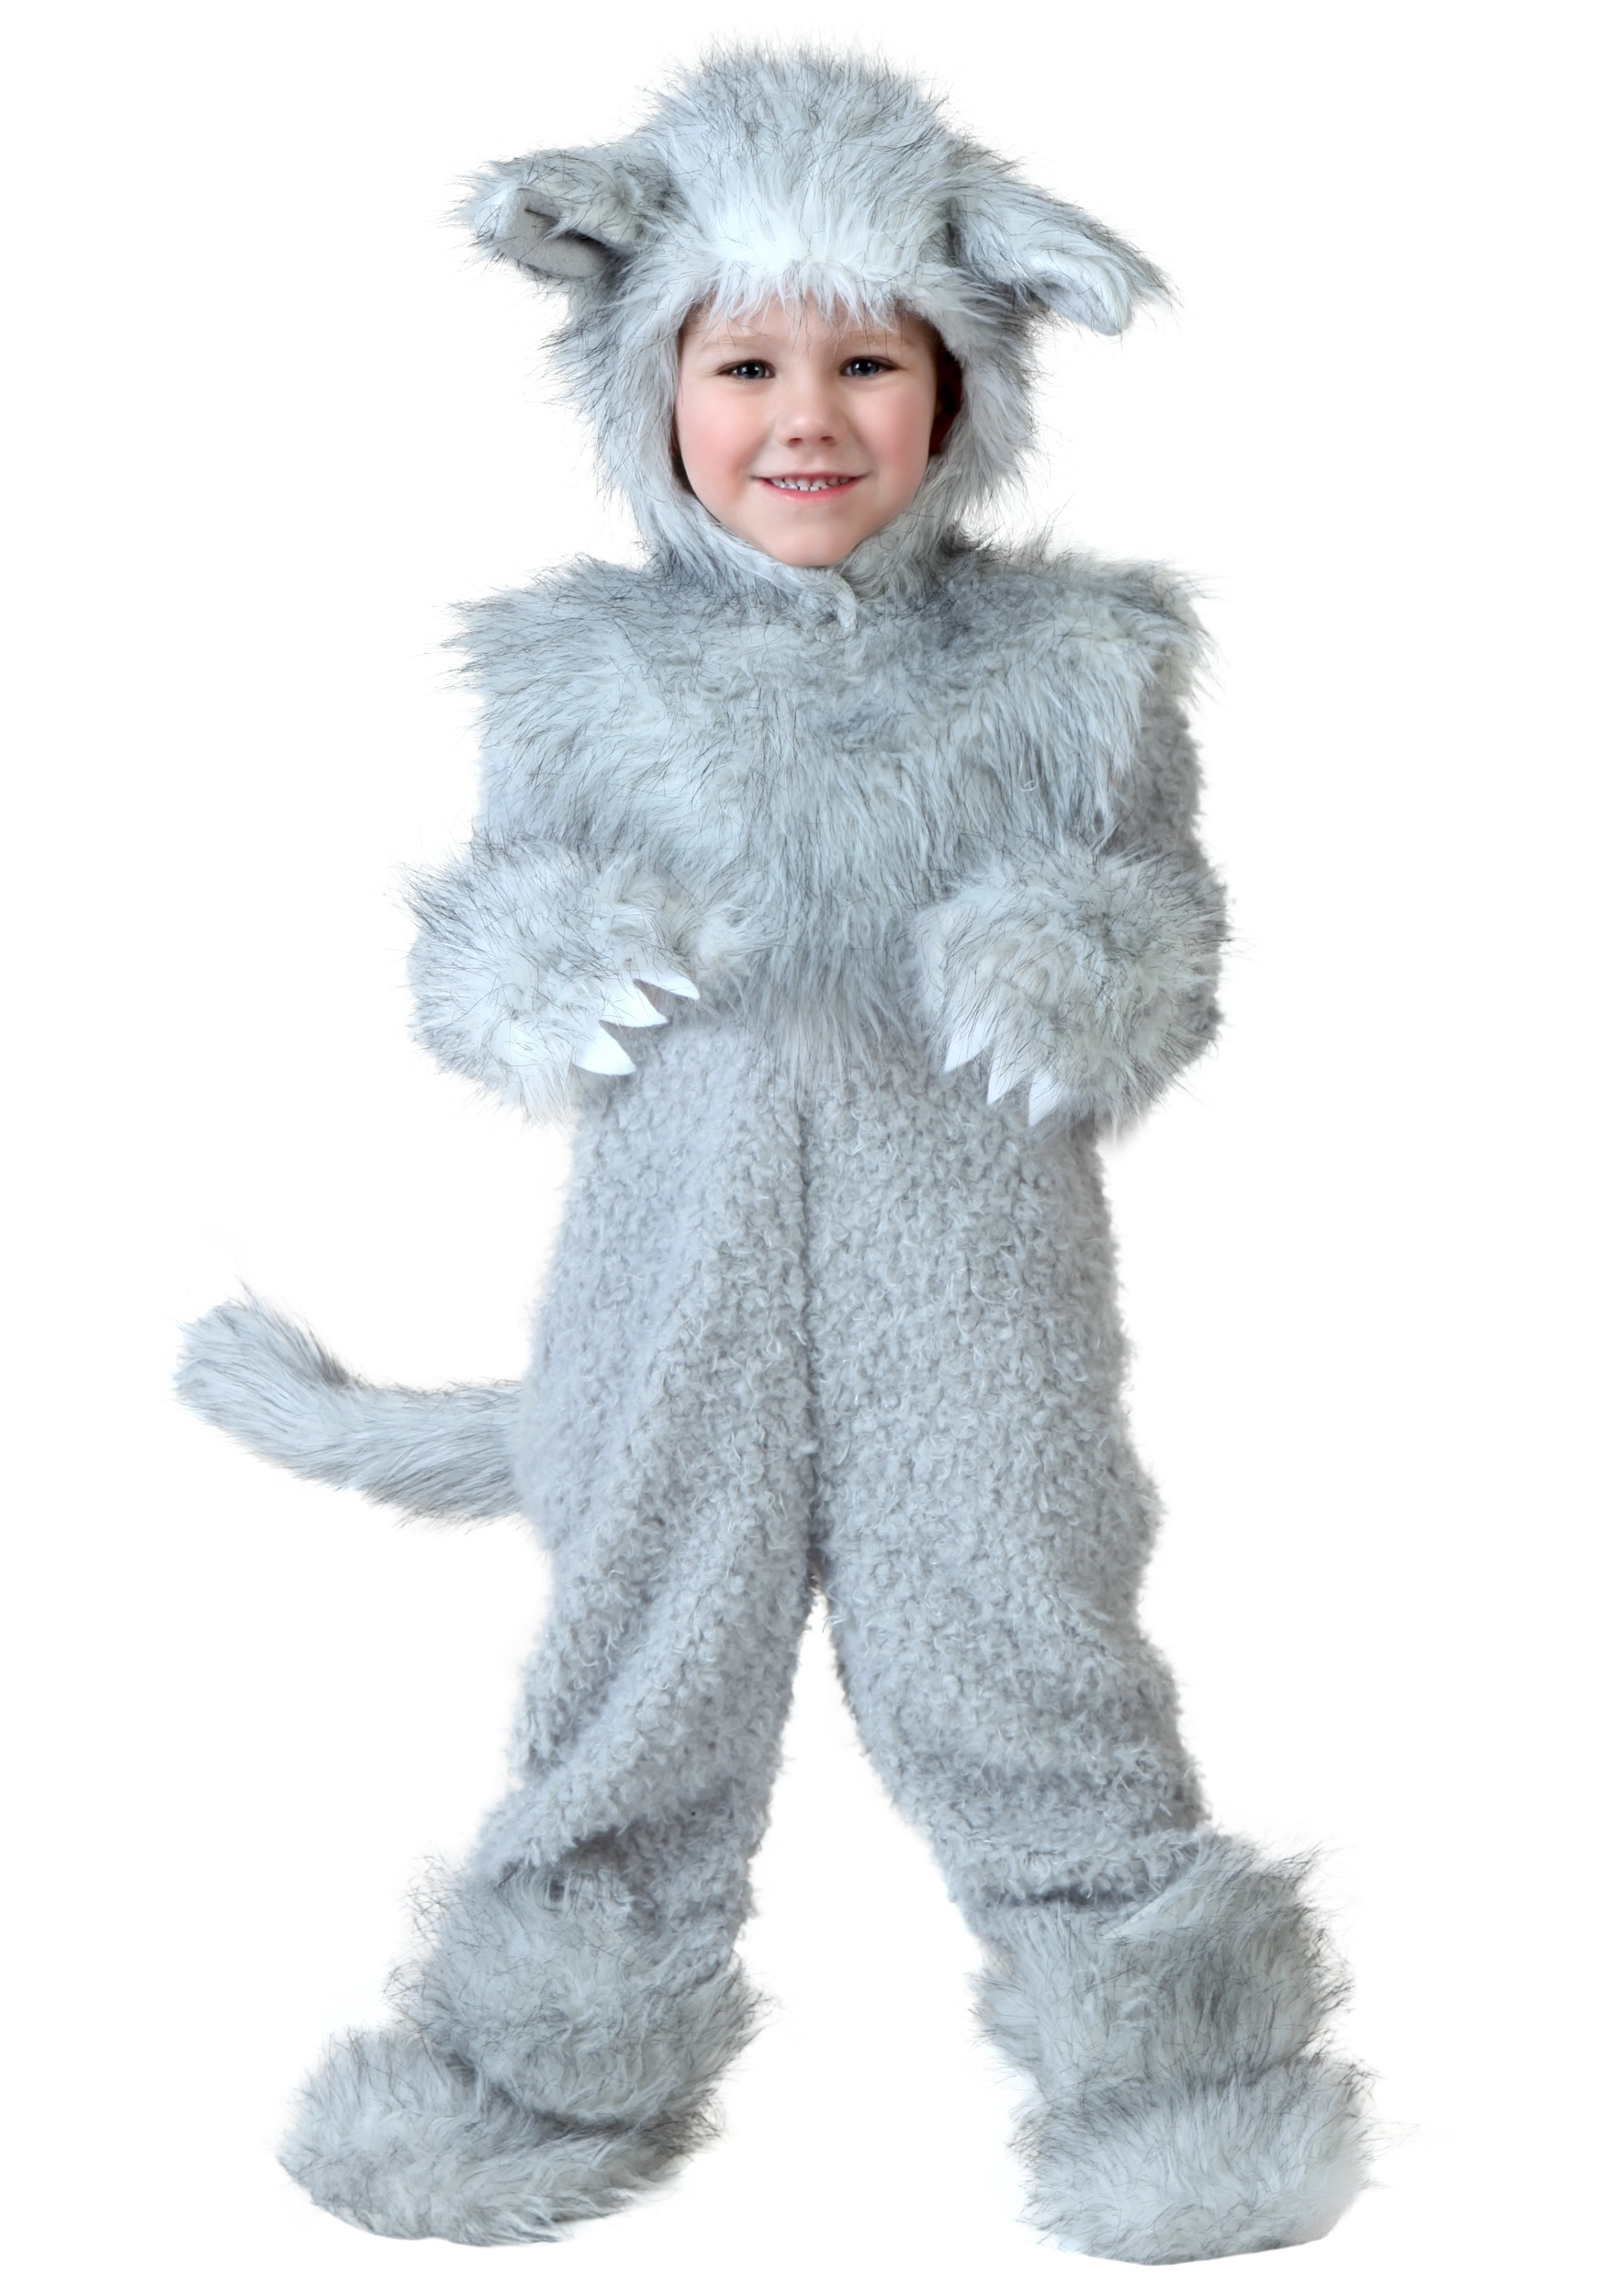 Wolf girl costume - photo#15  sc 1 st  animalia-life.club & Wolf Girl Costume